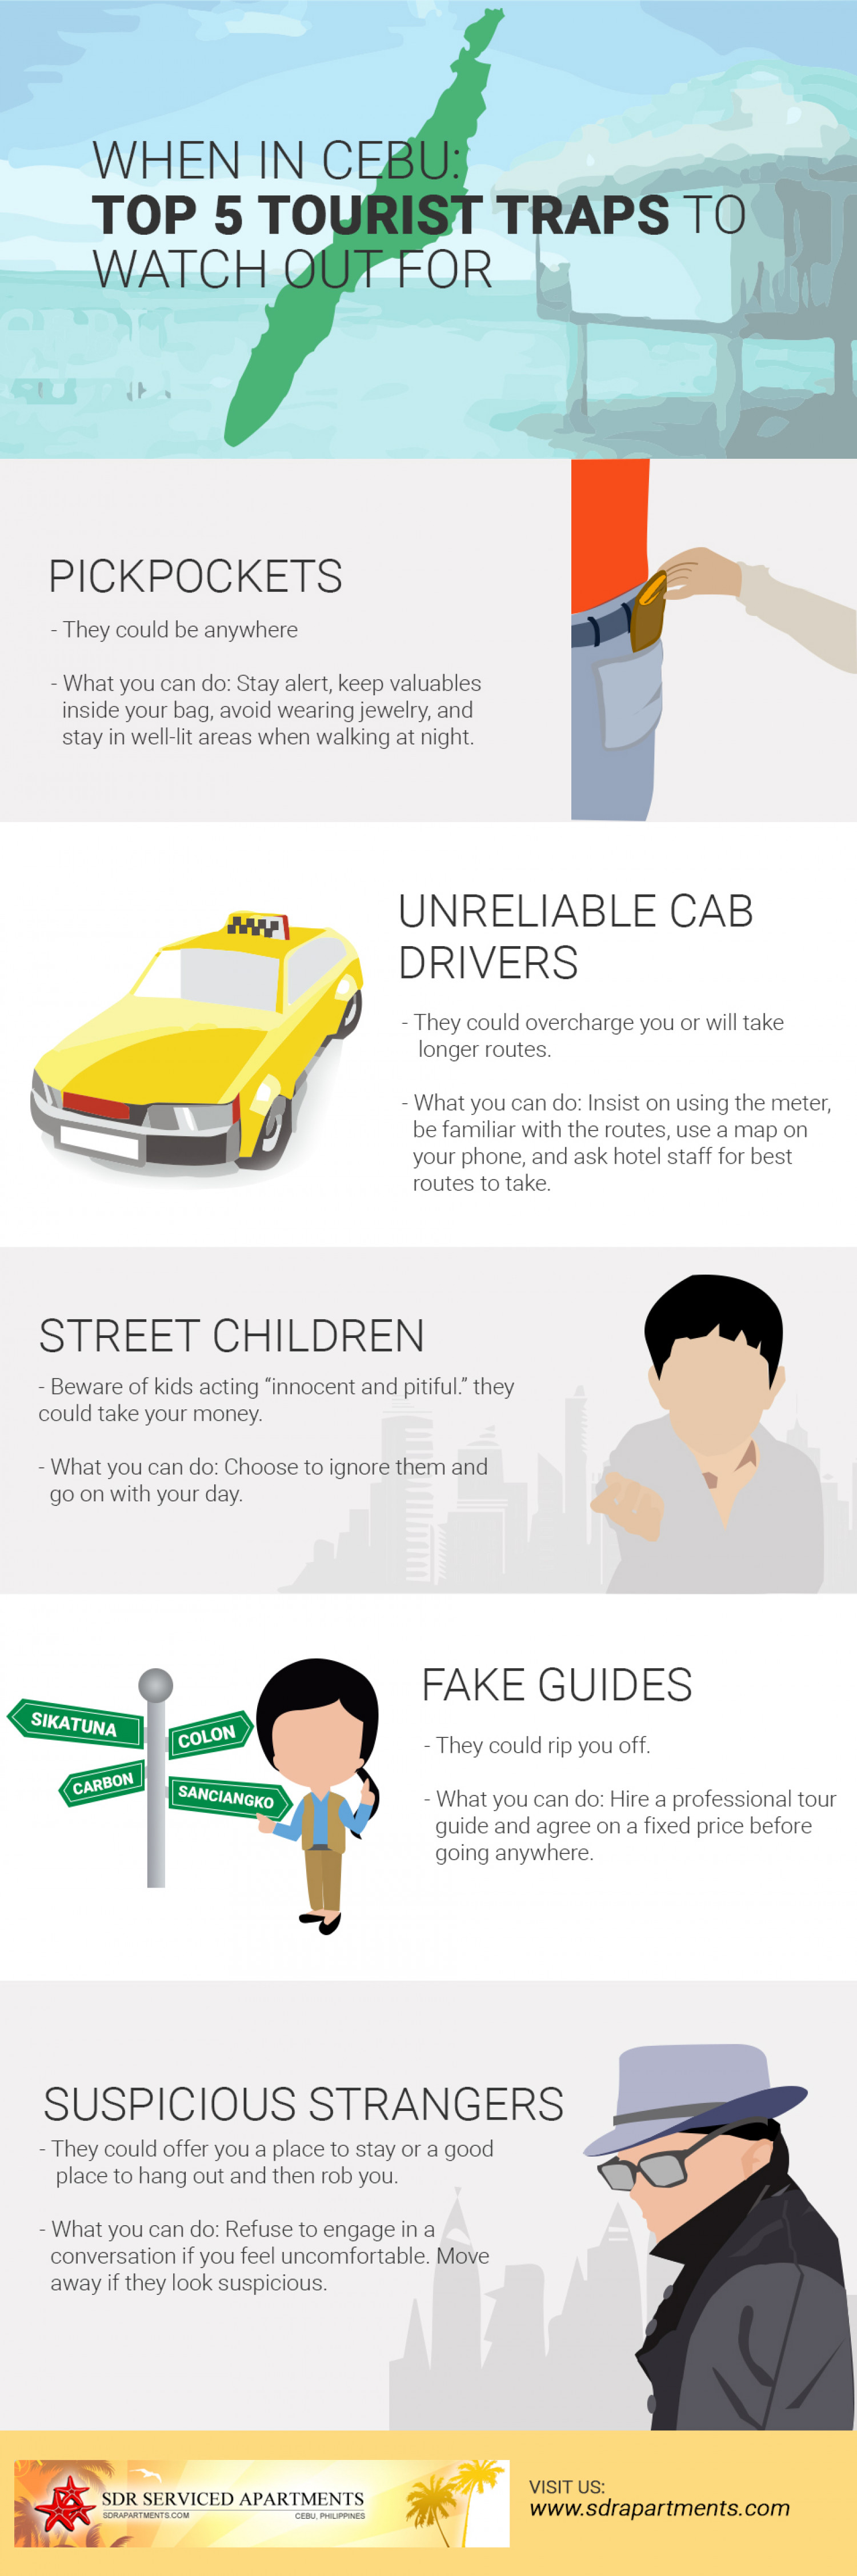 When in Cebu: Top 5 Tourist Traps to Watch Out For Infographic